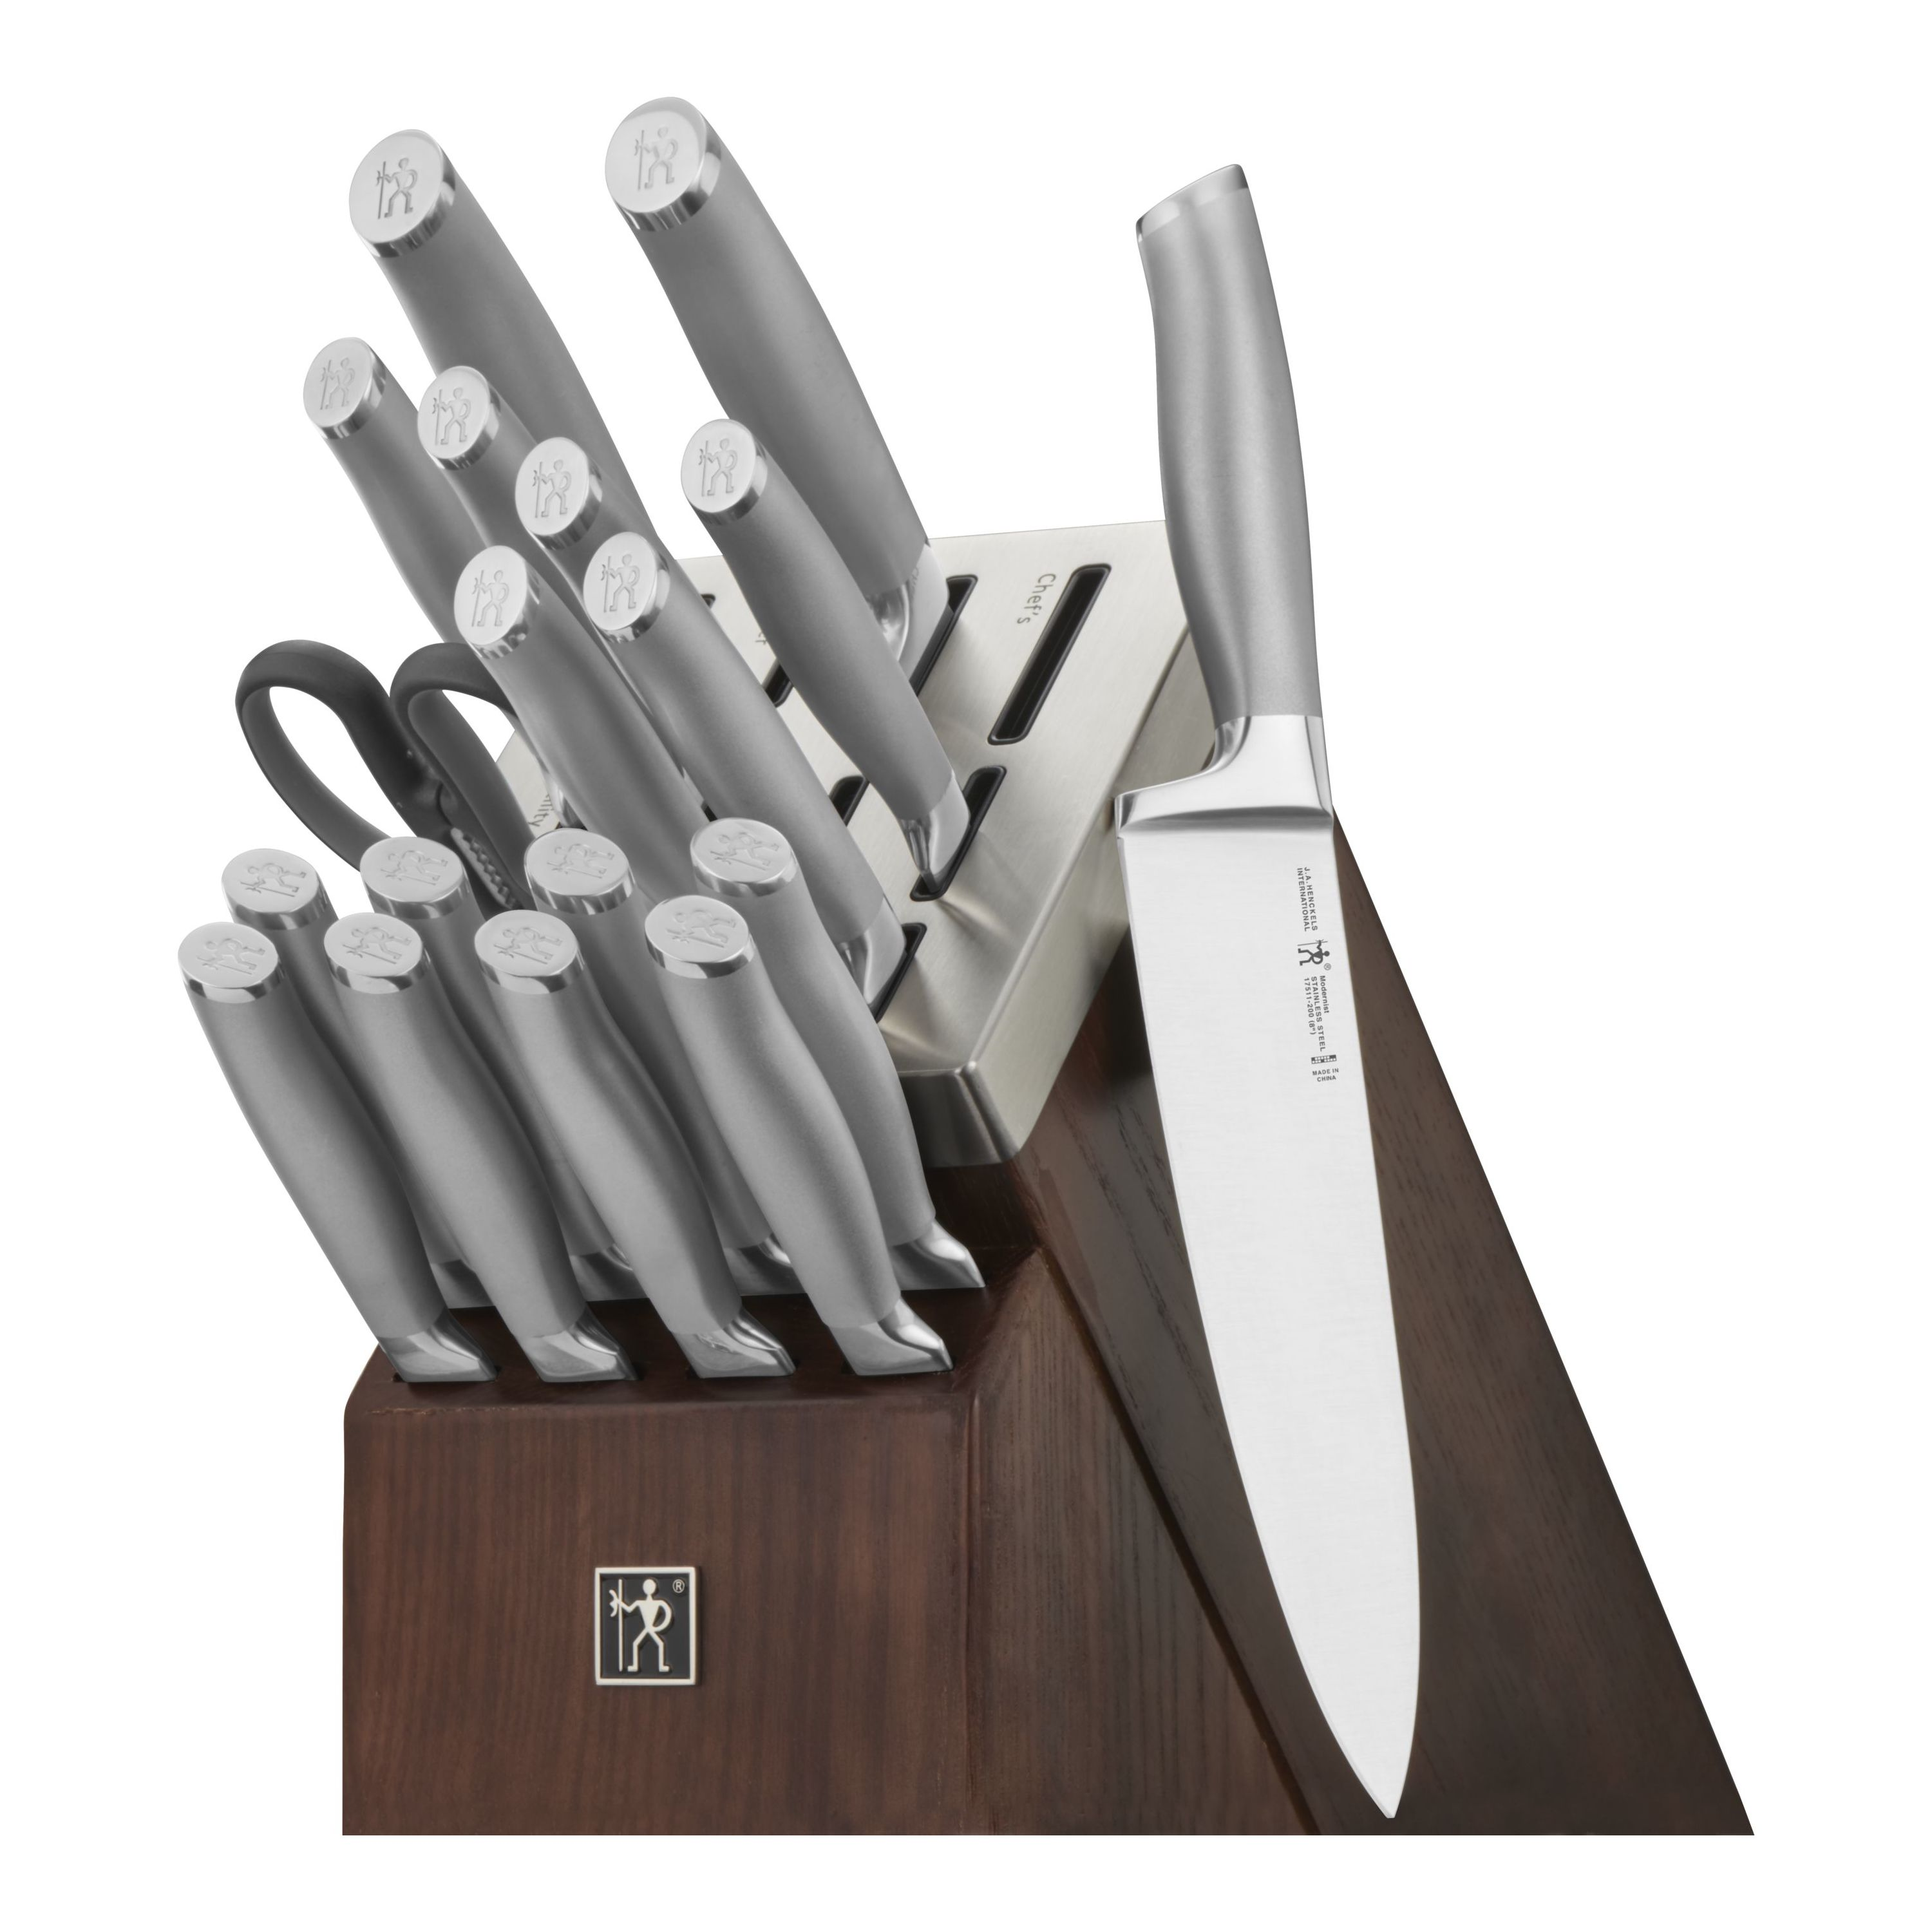 Henckels Modernist 20 Pc Knife Block Set Official Zwilling Shop